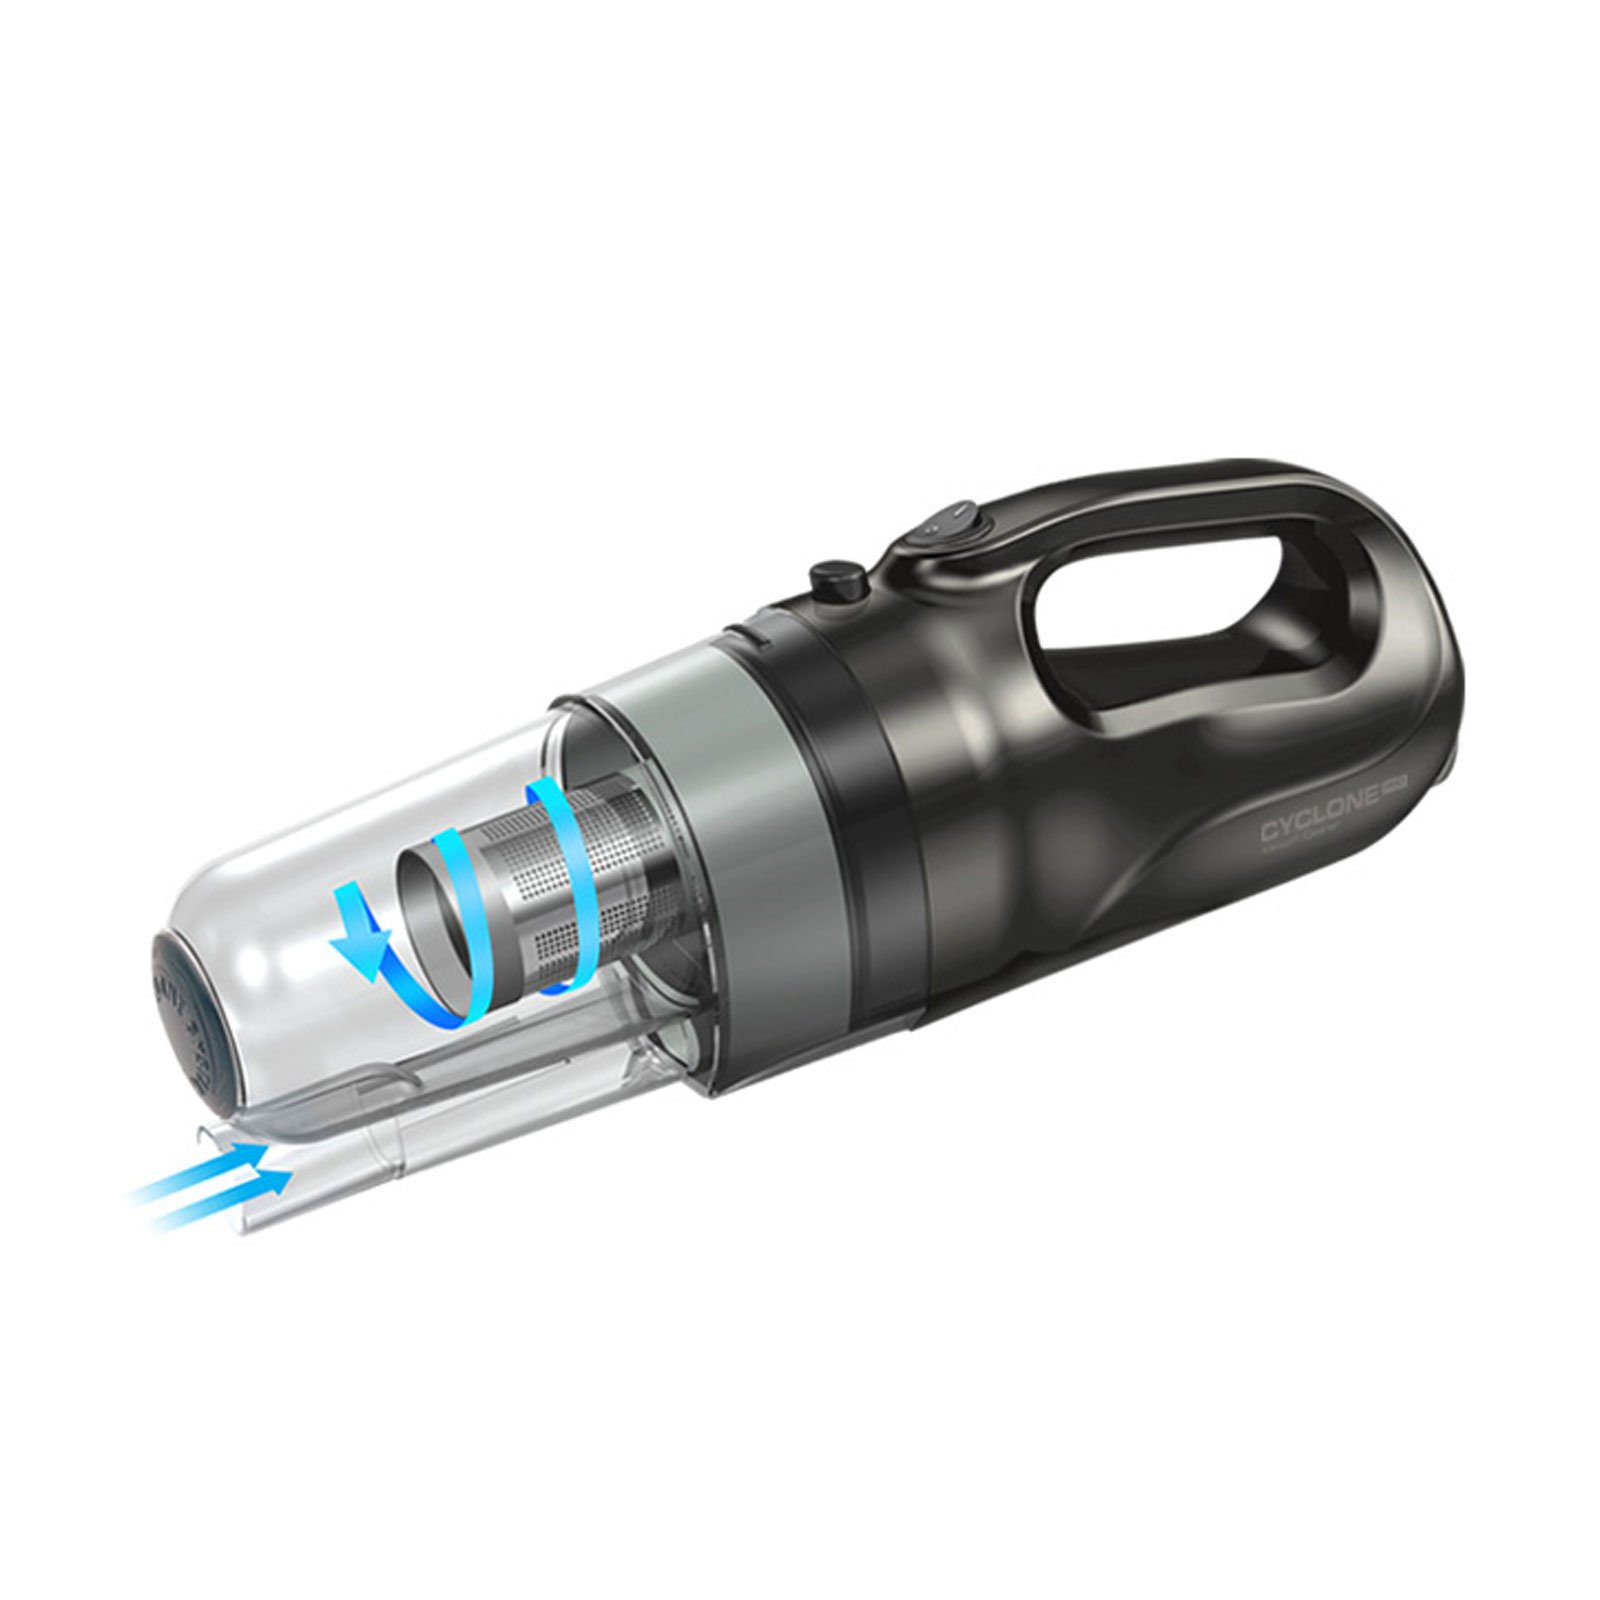 FOURING Pro Cyclone Suction Car Vacuum Cleaner 150W Power Cleaning Permanent Stainless Steel Filter with Pouch